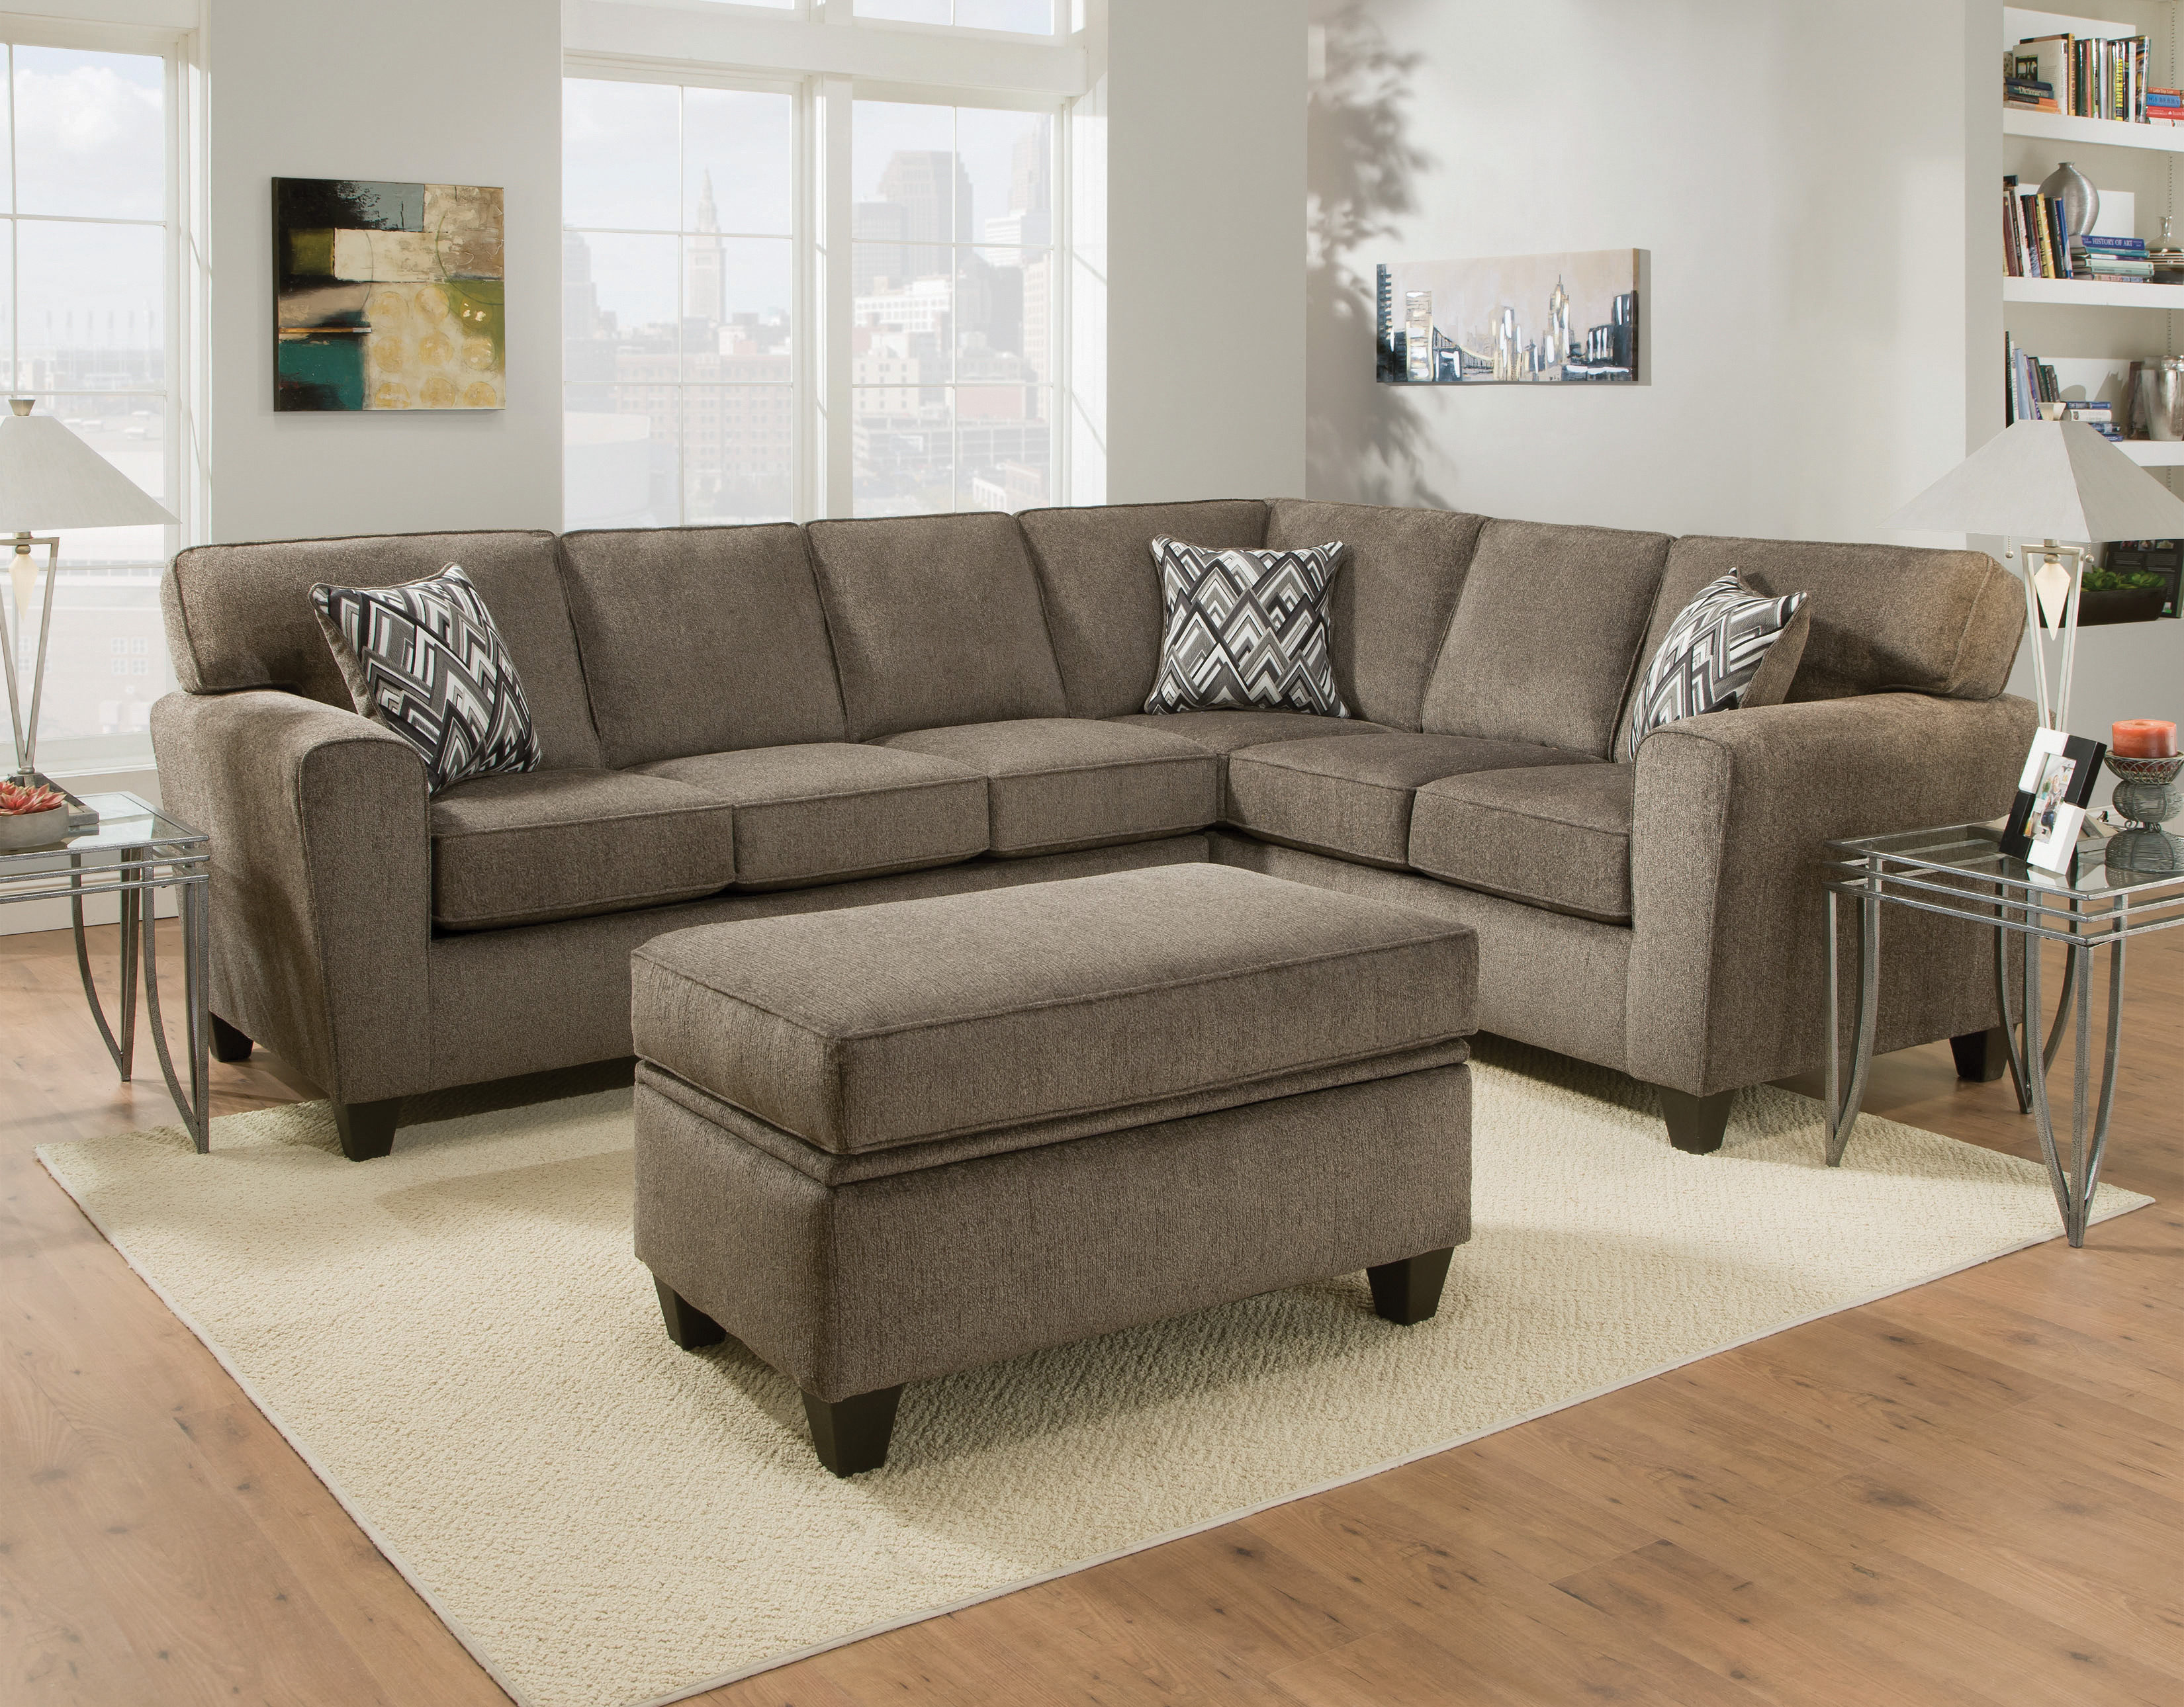 Peachy 3100 Cornell Pewter Sectional Awfco Catalog Site Pabps2019 Chair Design Images Pabps2019Com